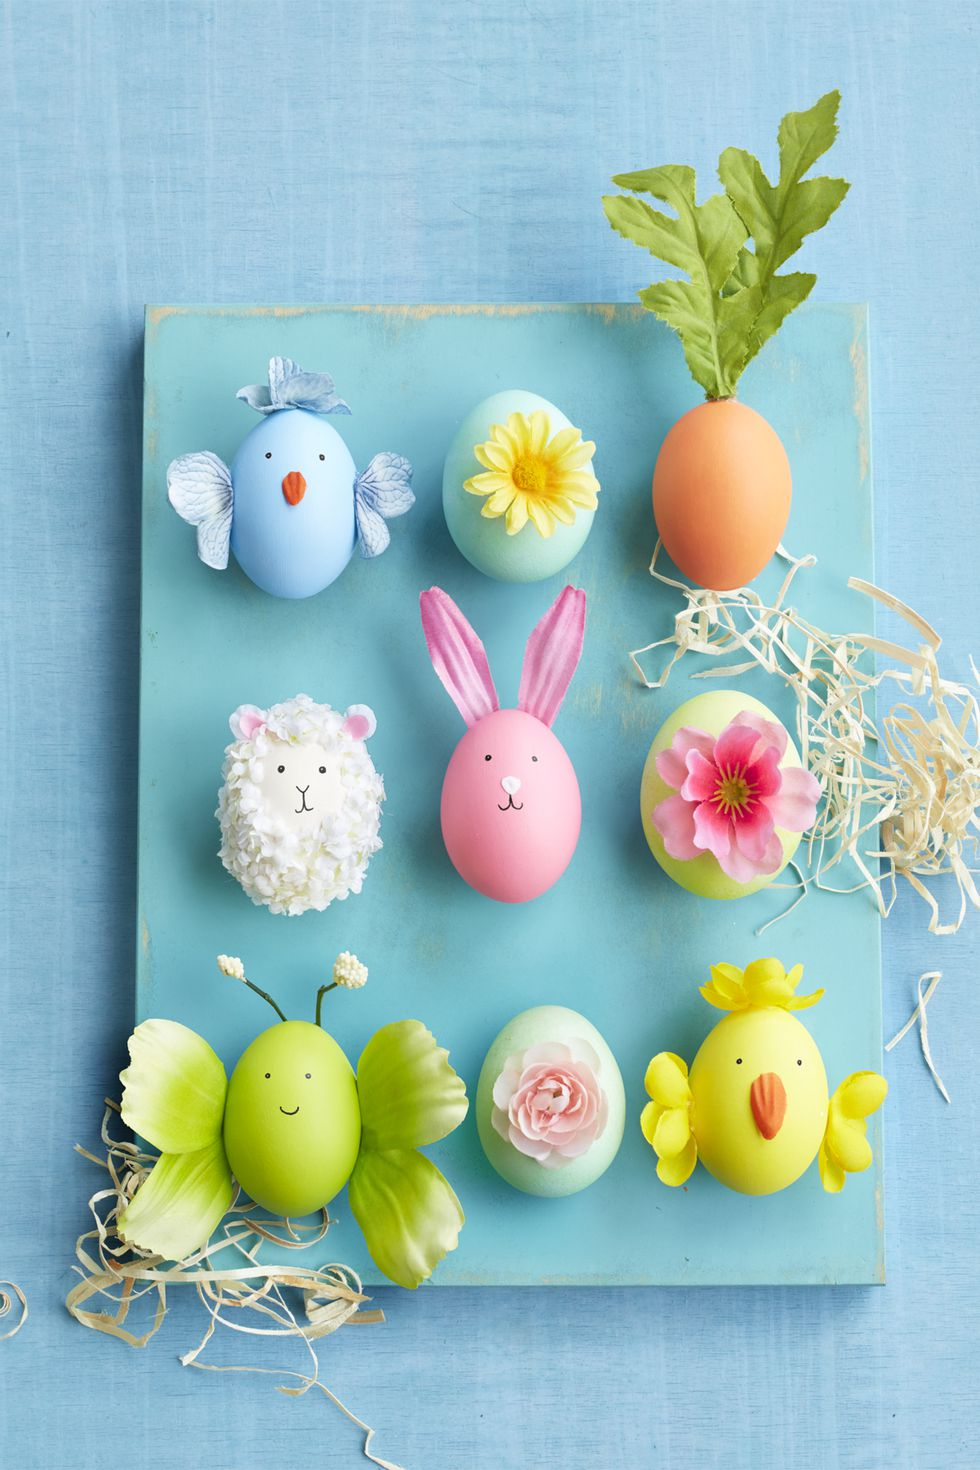 1490369788-sweet-easter-lamb-egg-0417